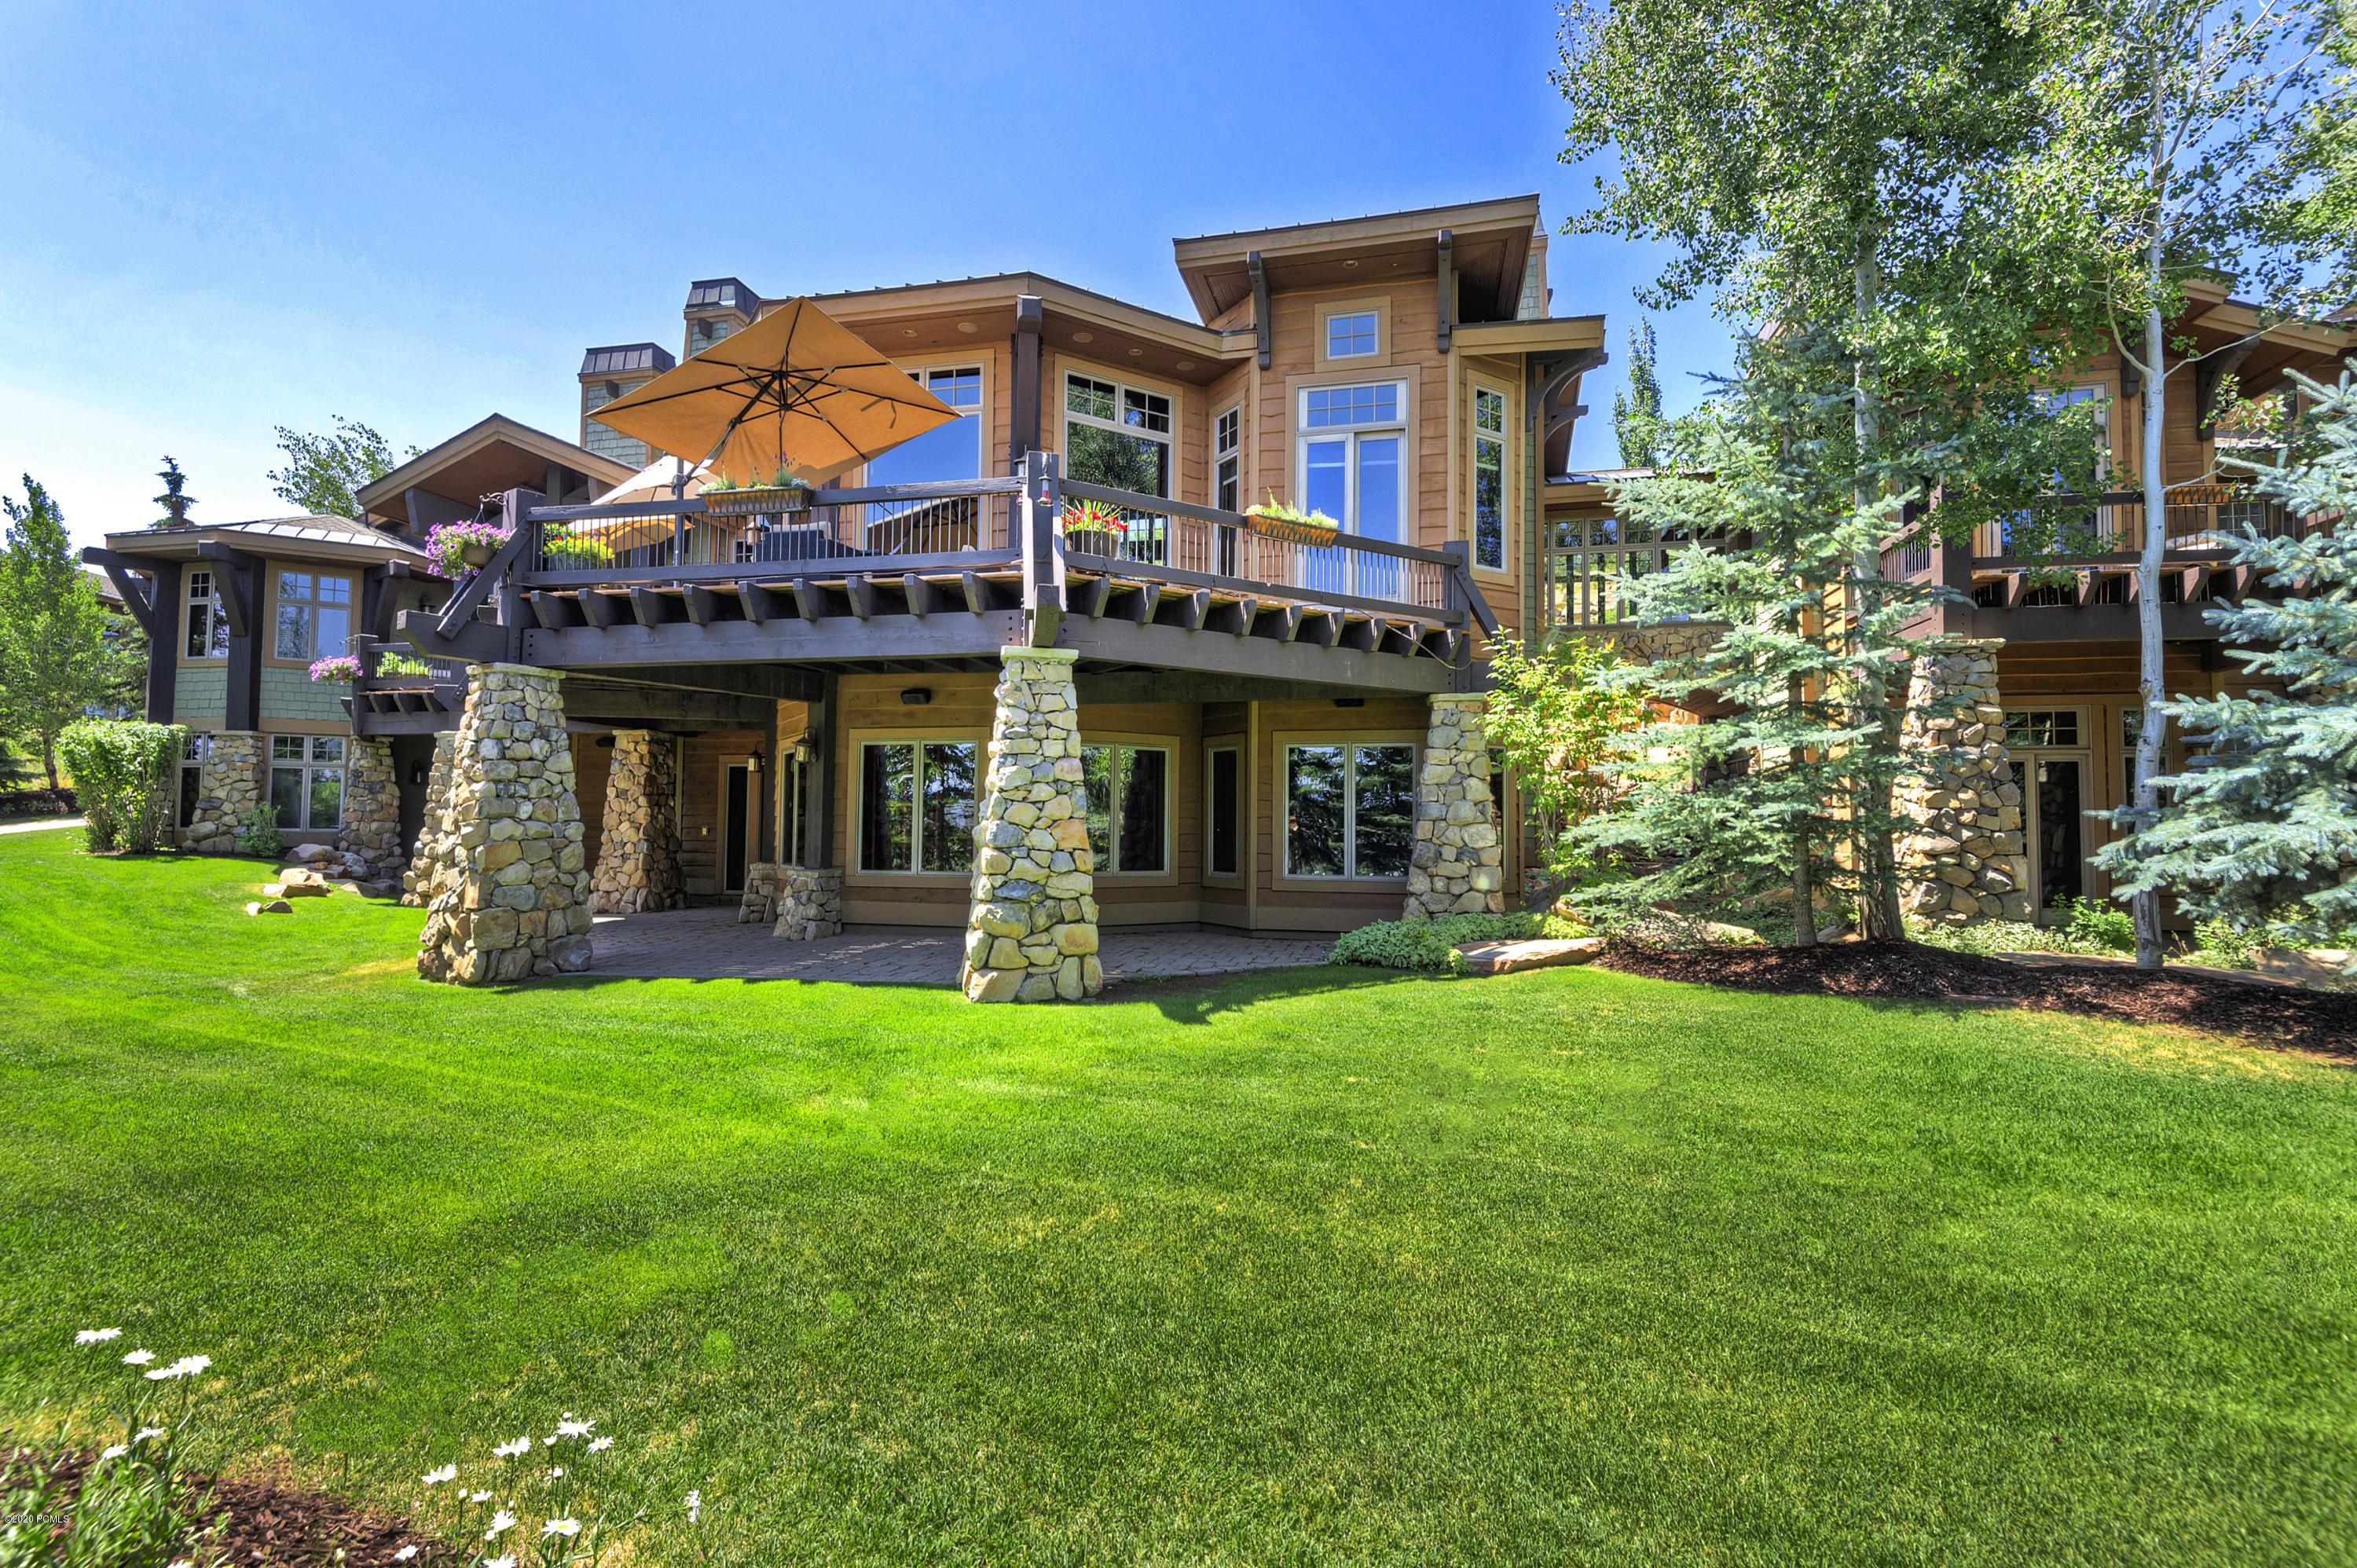 7145 Glenwild Drive, Park City, Utah 84098, 7 Bedrooms Bedrooms, ,9 BathroomsBathrooms,Single Family,For Sale,Glenwild,12003289